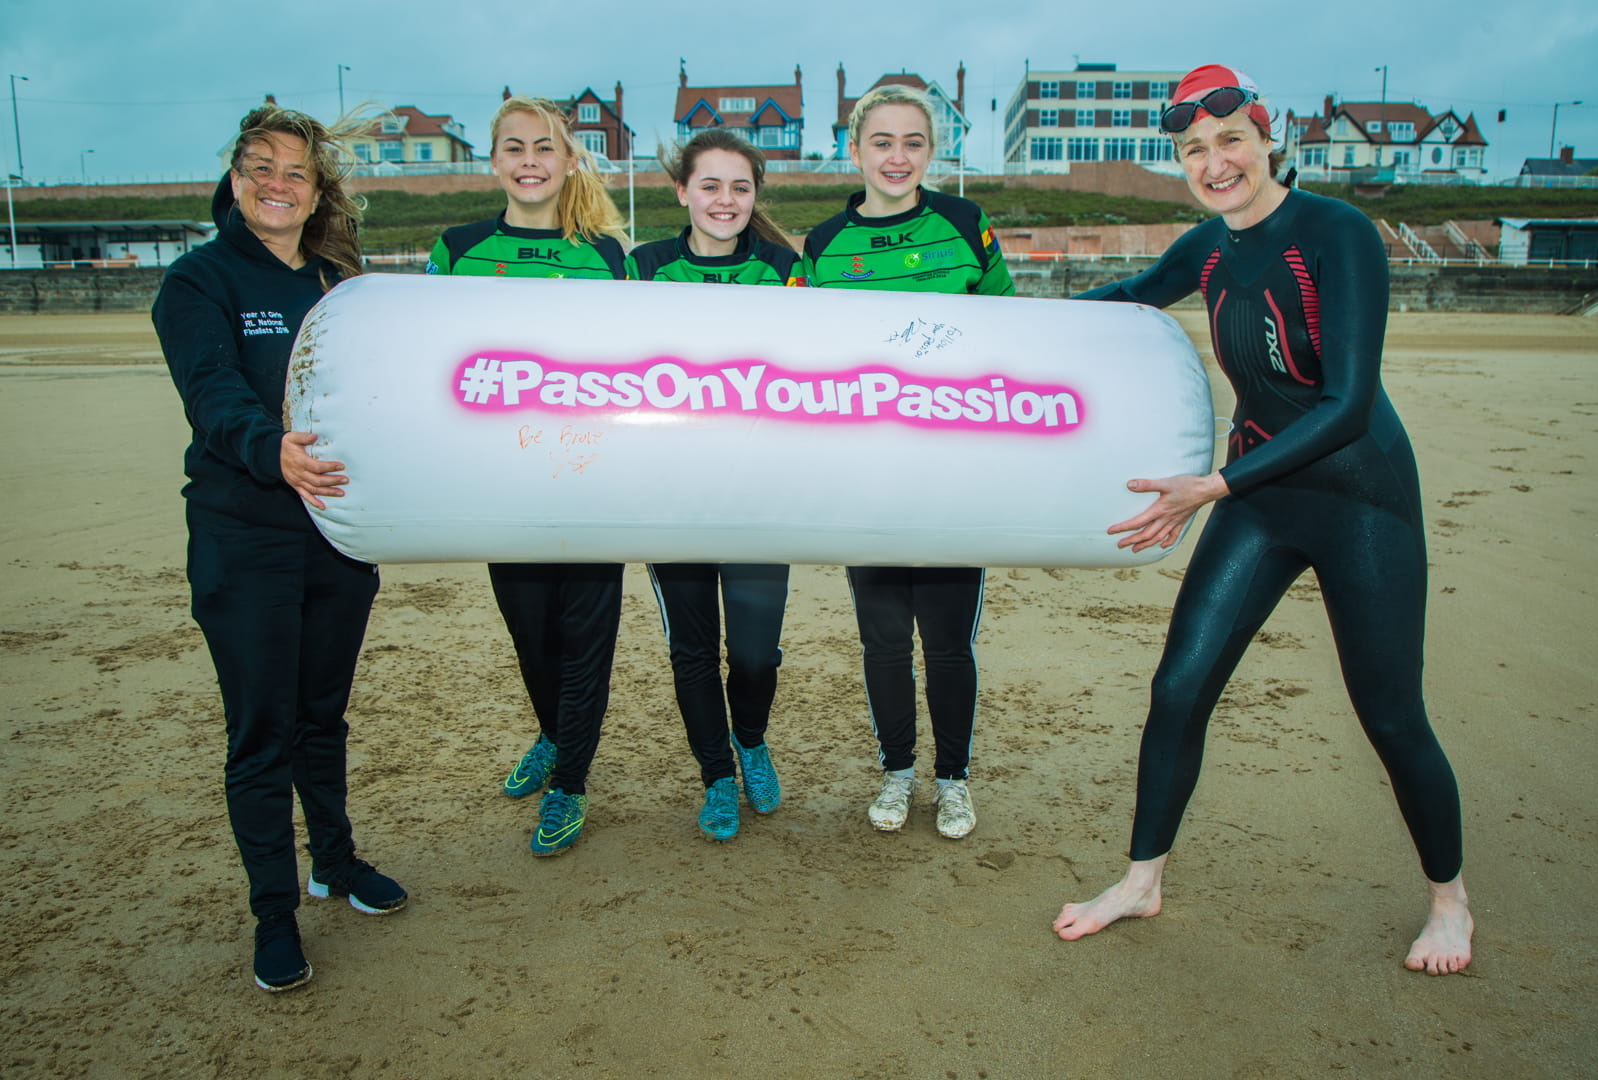 Female coaches on beach passing on inflatable batton